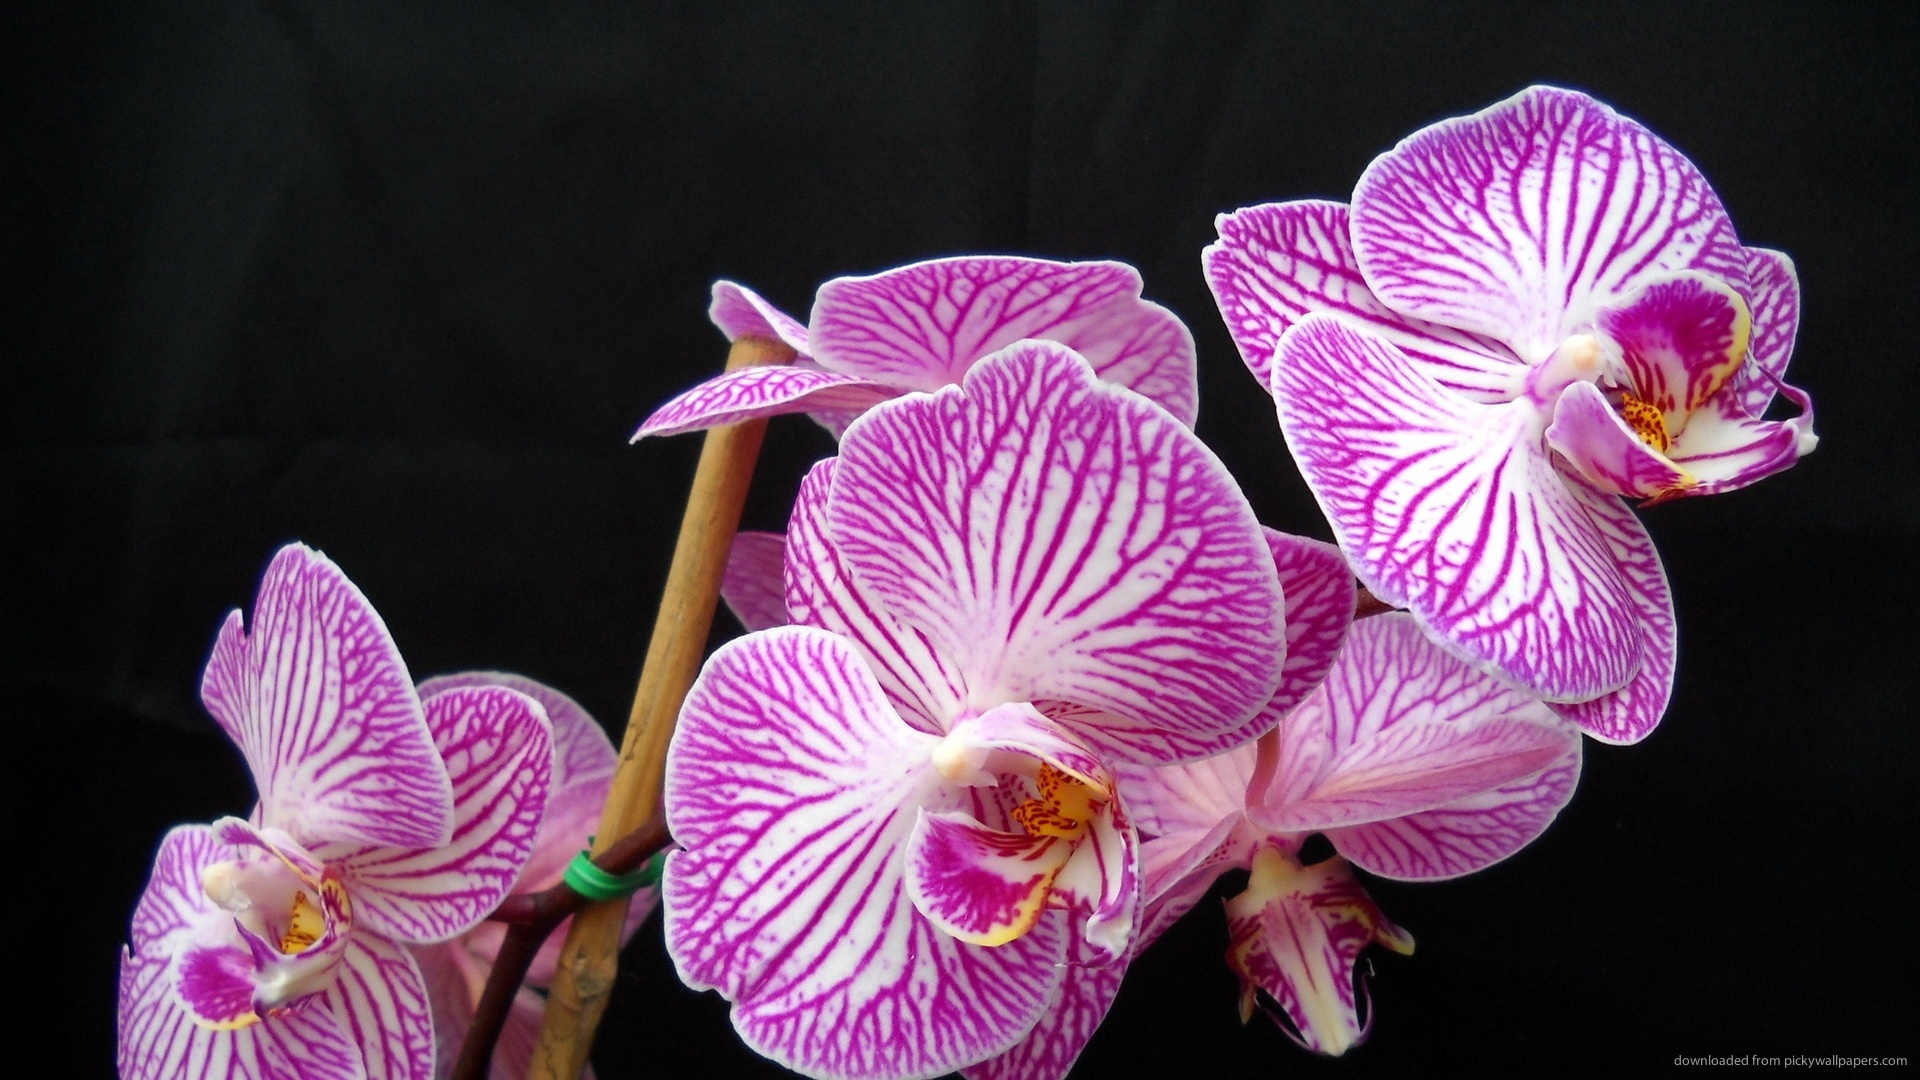 Stunning Purple Phalaenopsis Orchid Flowers Wallpaper Picture For 1920x1080